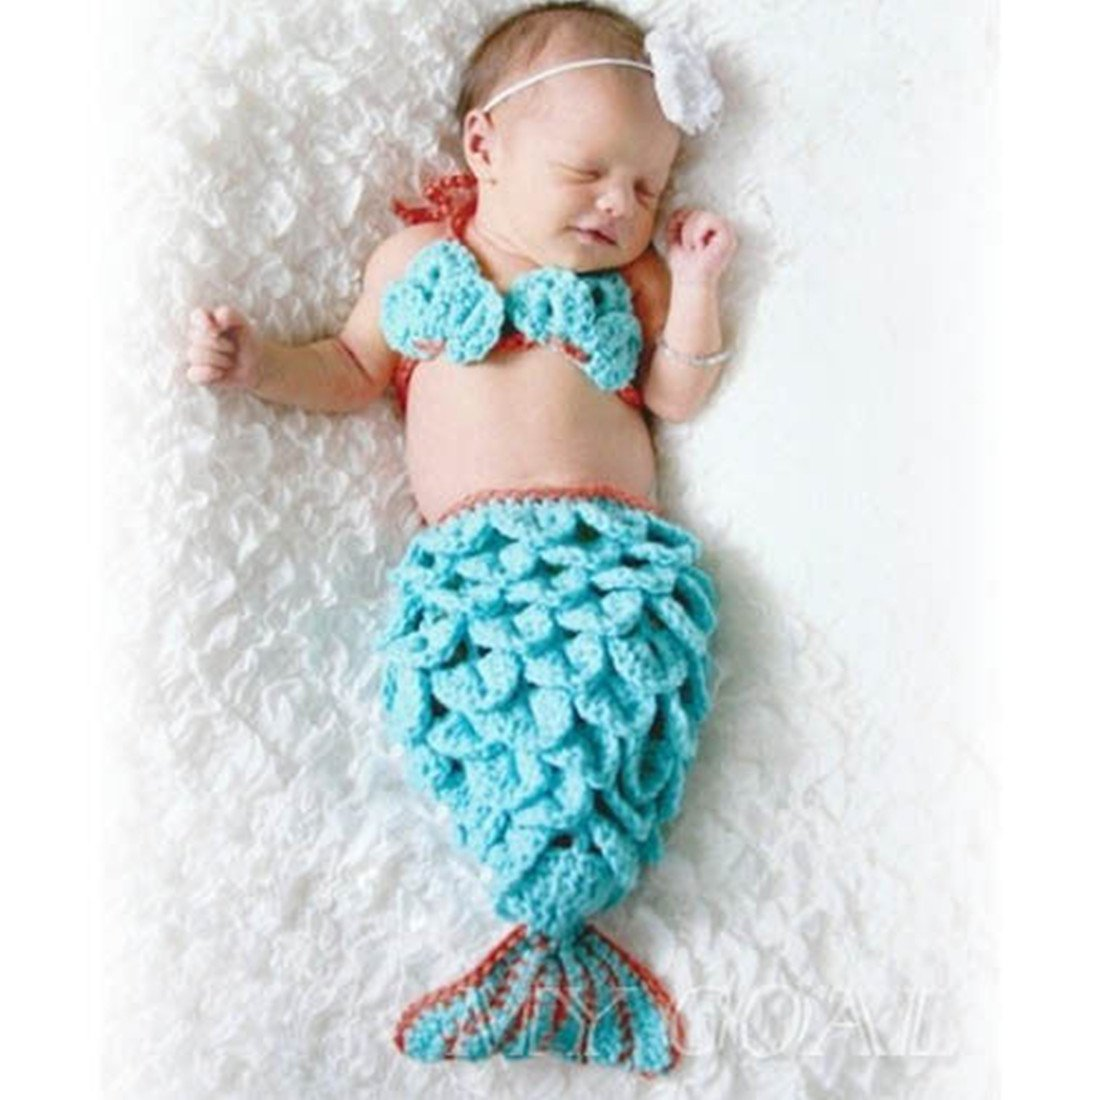 Wrap Text around Image  sc 1 st  Mermaid Decor Ideas & Mermaid Infant Costume for Halloween - Mermaid Decor Ideas